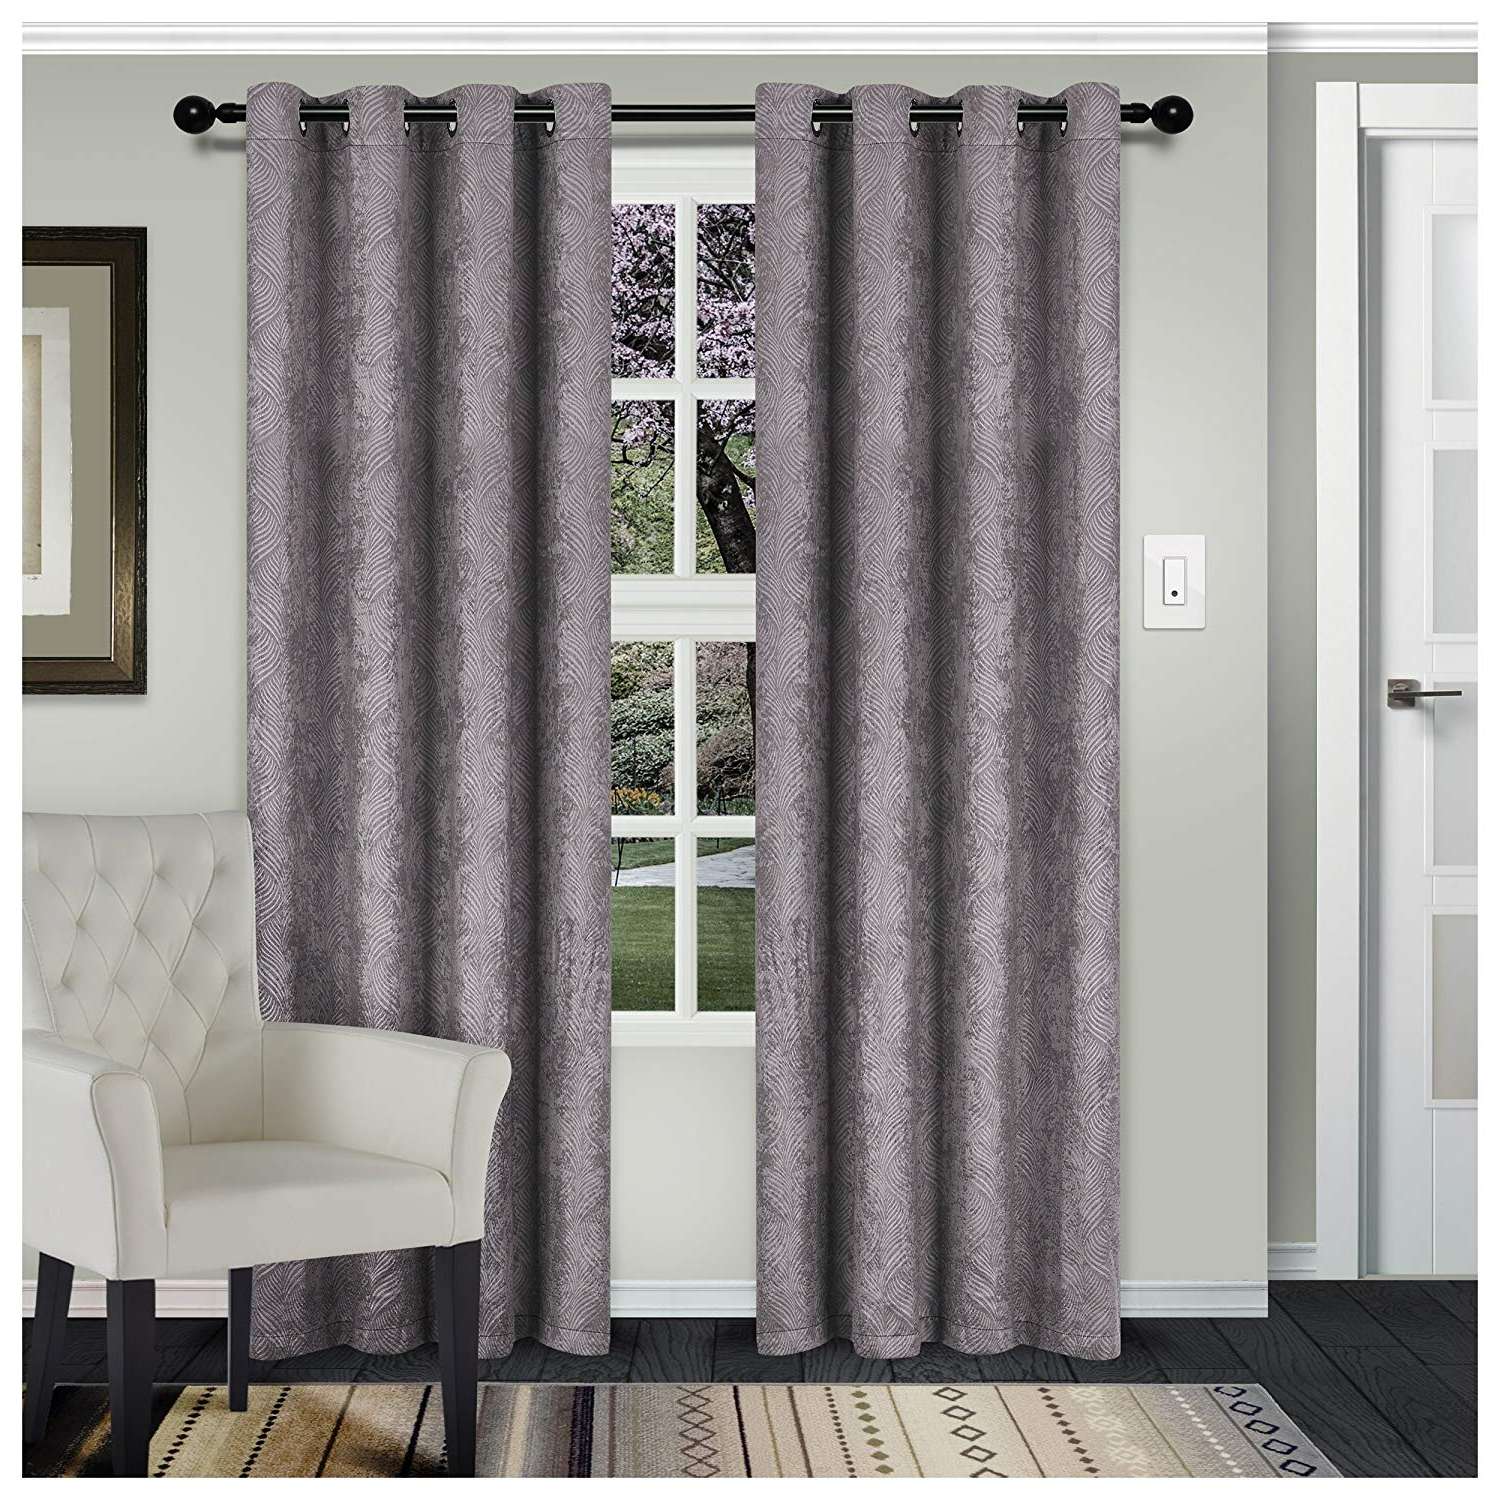 Popular Grommet Top Thermal Insulated Blackout Curtain Panel Pairs Regarding Superior Waverly Blackout Curtain Set Of 2, Thermal Insulated Panel Pair With Grommet Top Header, Beautiful Embossed Wave Room Darkening Drapes, (View 8 of 20)